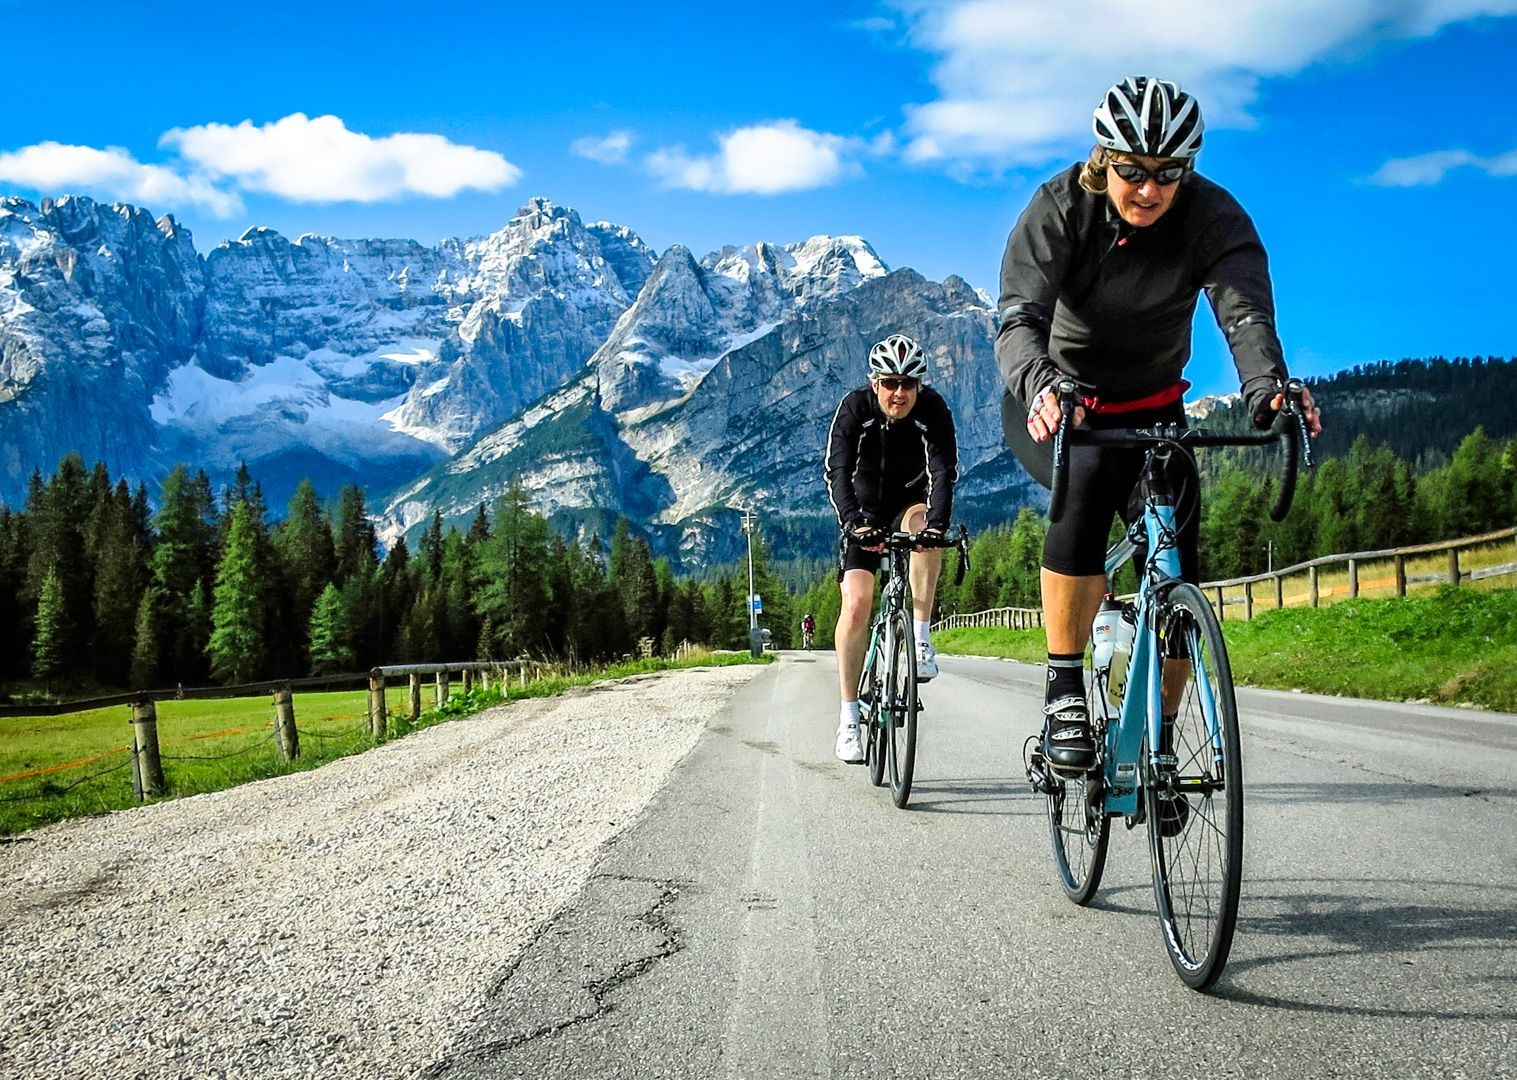 sella-ronda-italy-road-cycling-gran-fondo-holiday.jpg - Italy - Italian Dolomites - Guided Road Cycling Holiday - Italia Road Cycling